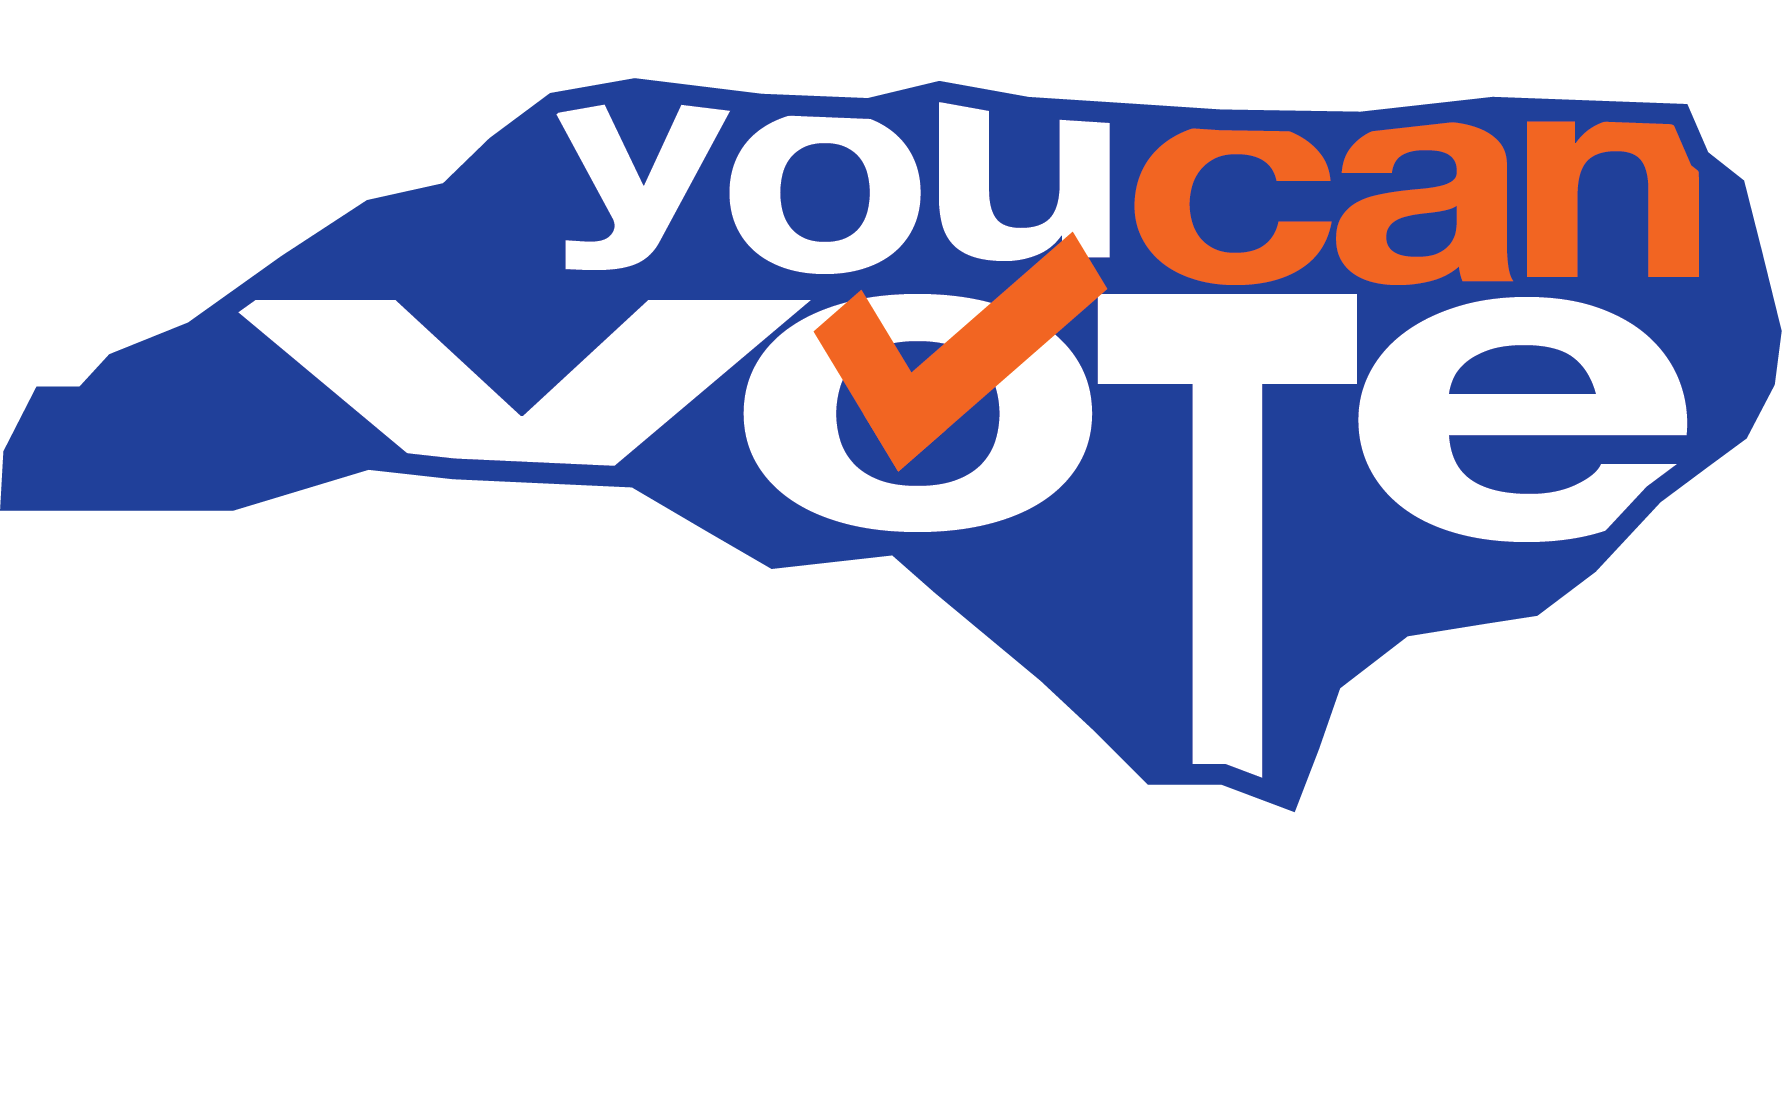 Voting clipart absentee ballot. Vote you can